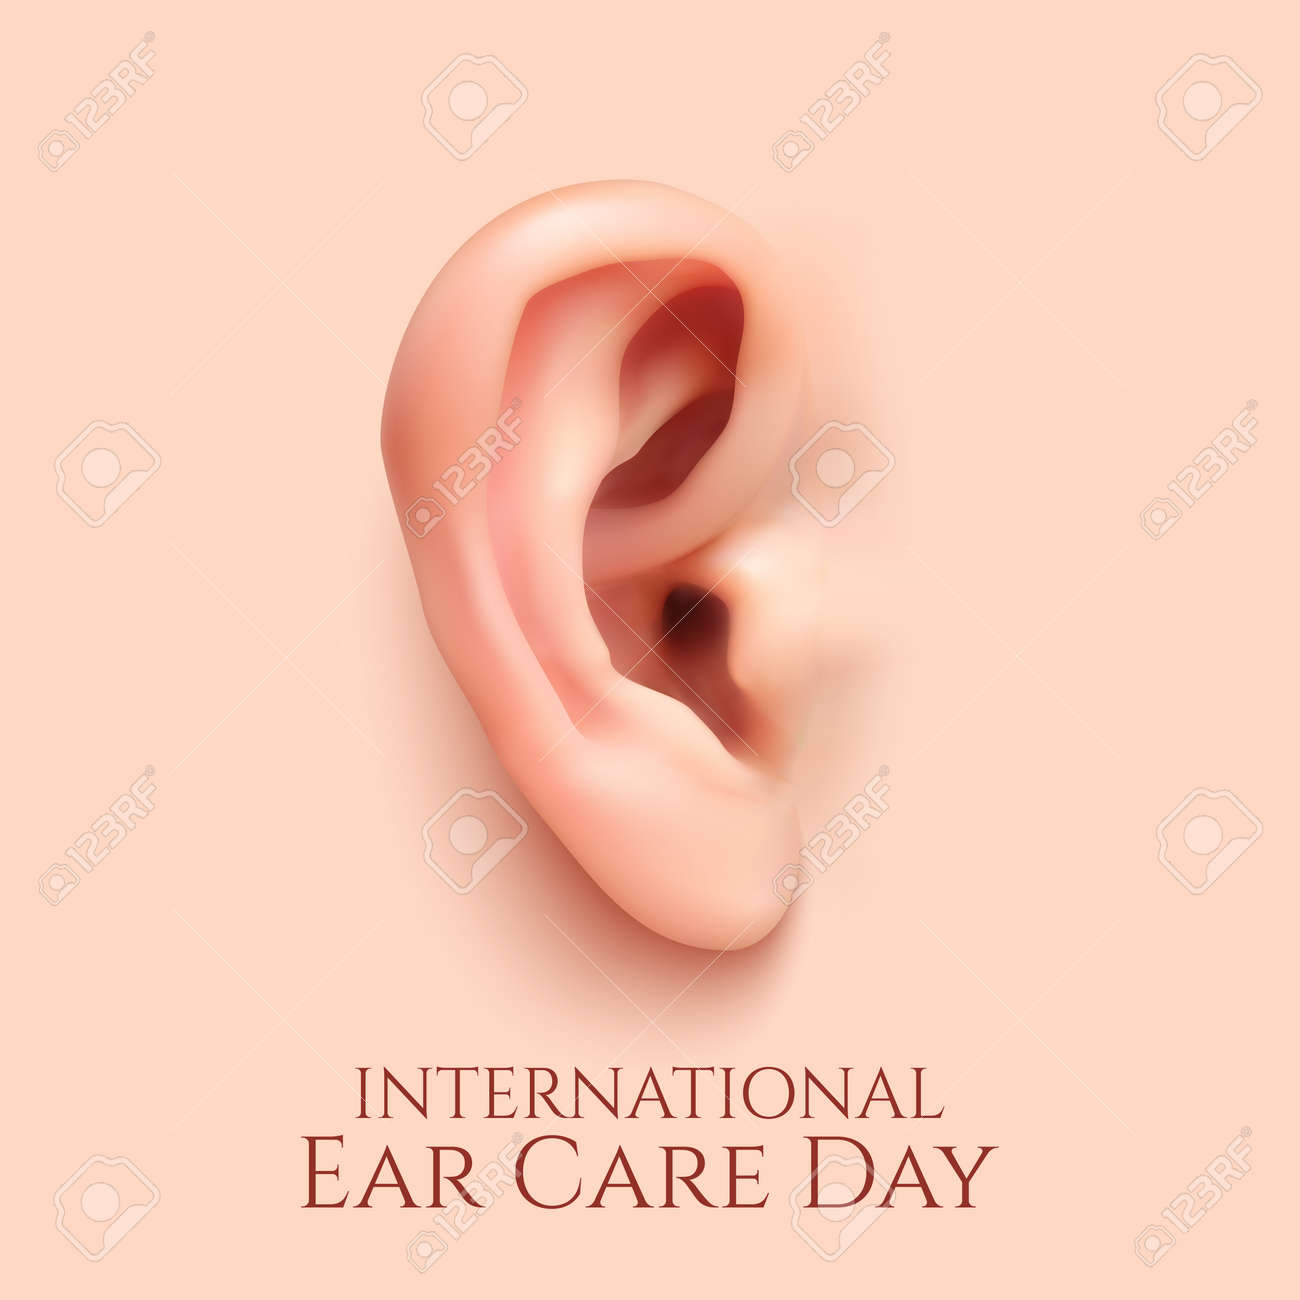 International ear care day .Background with realistic ear. Vector illustration. - 52578951